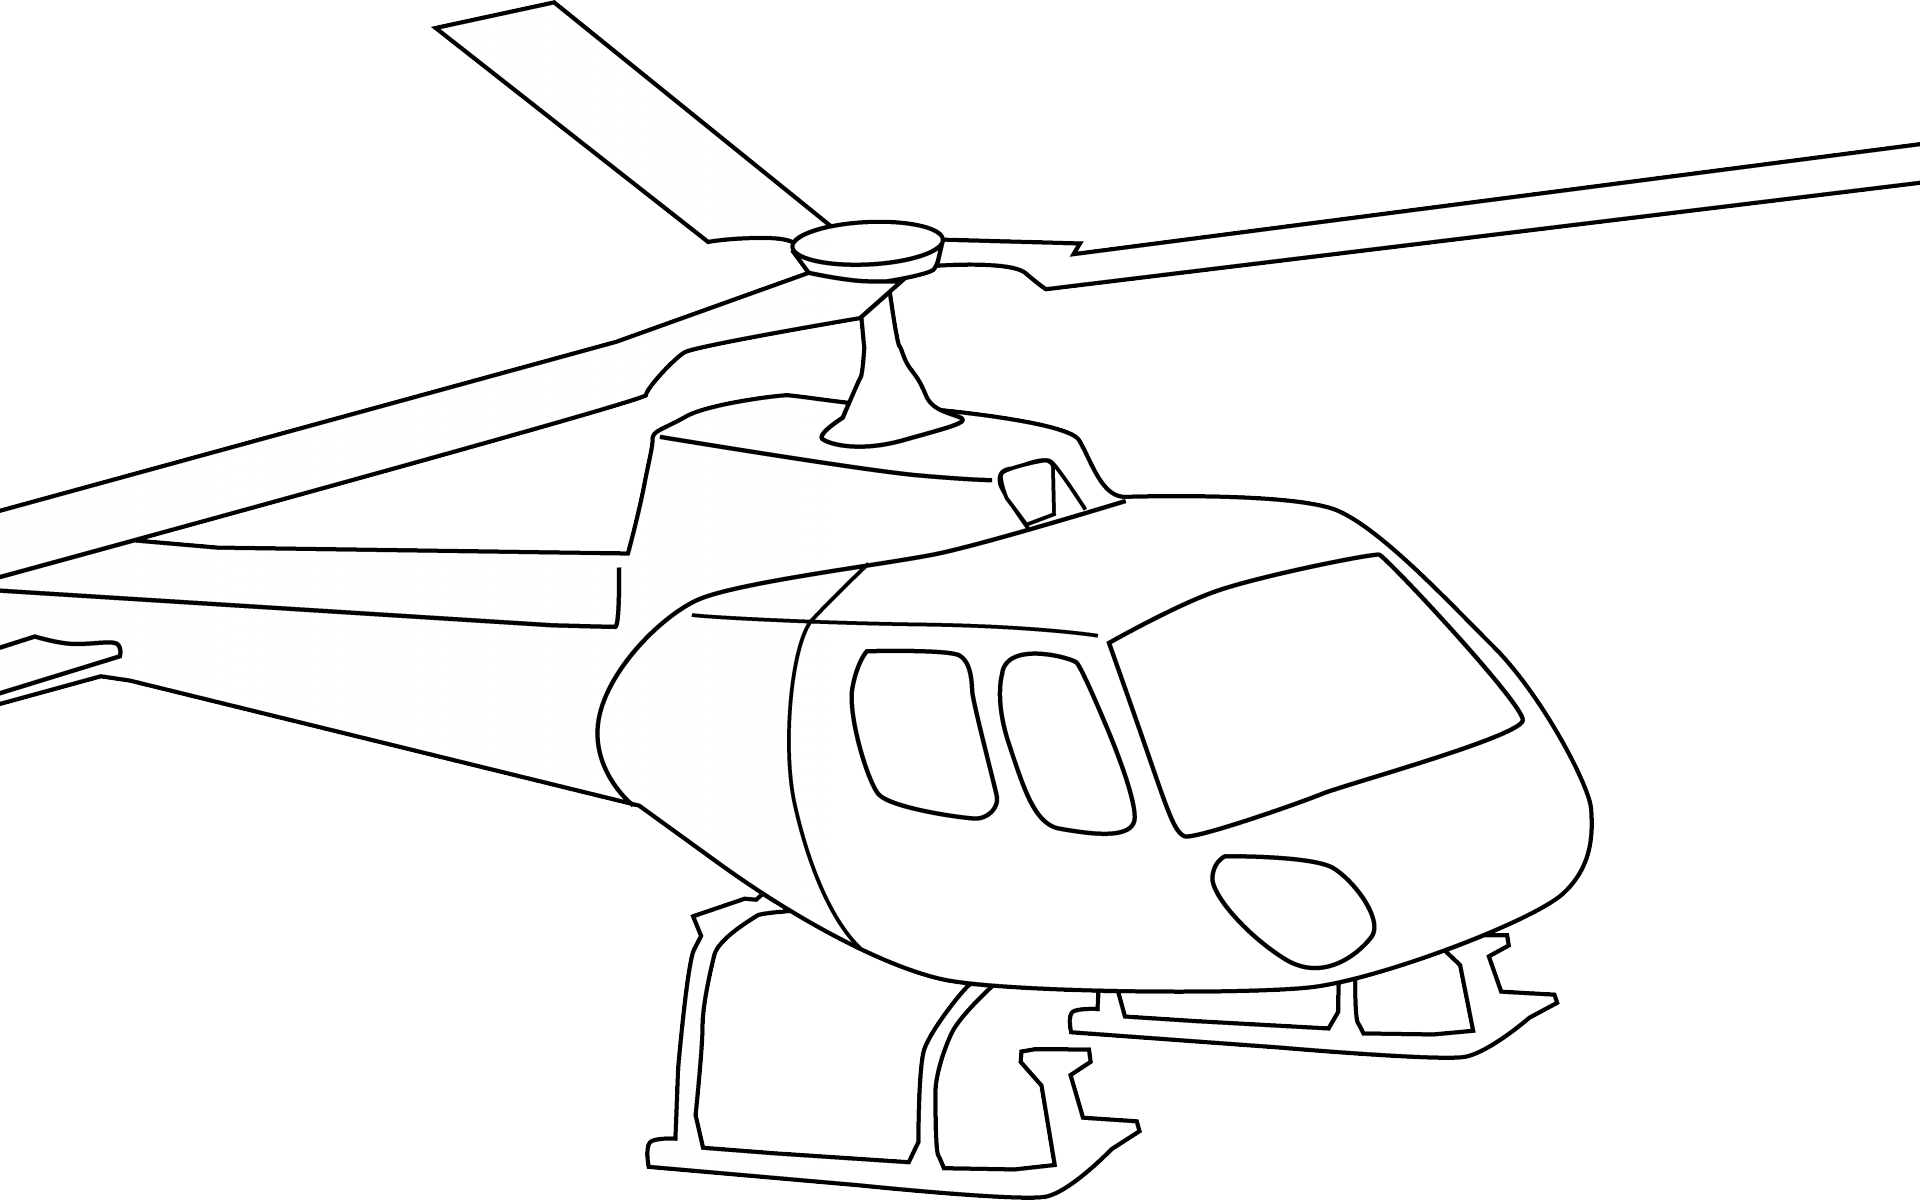 Helicopter clipart free download on WebStockReview